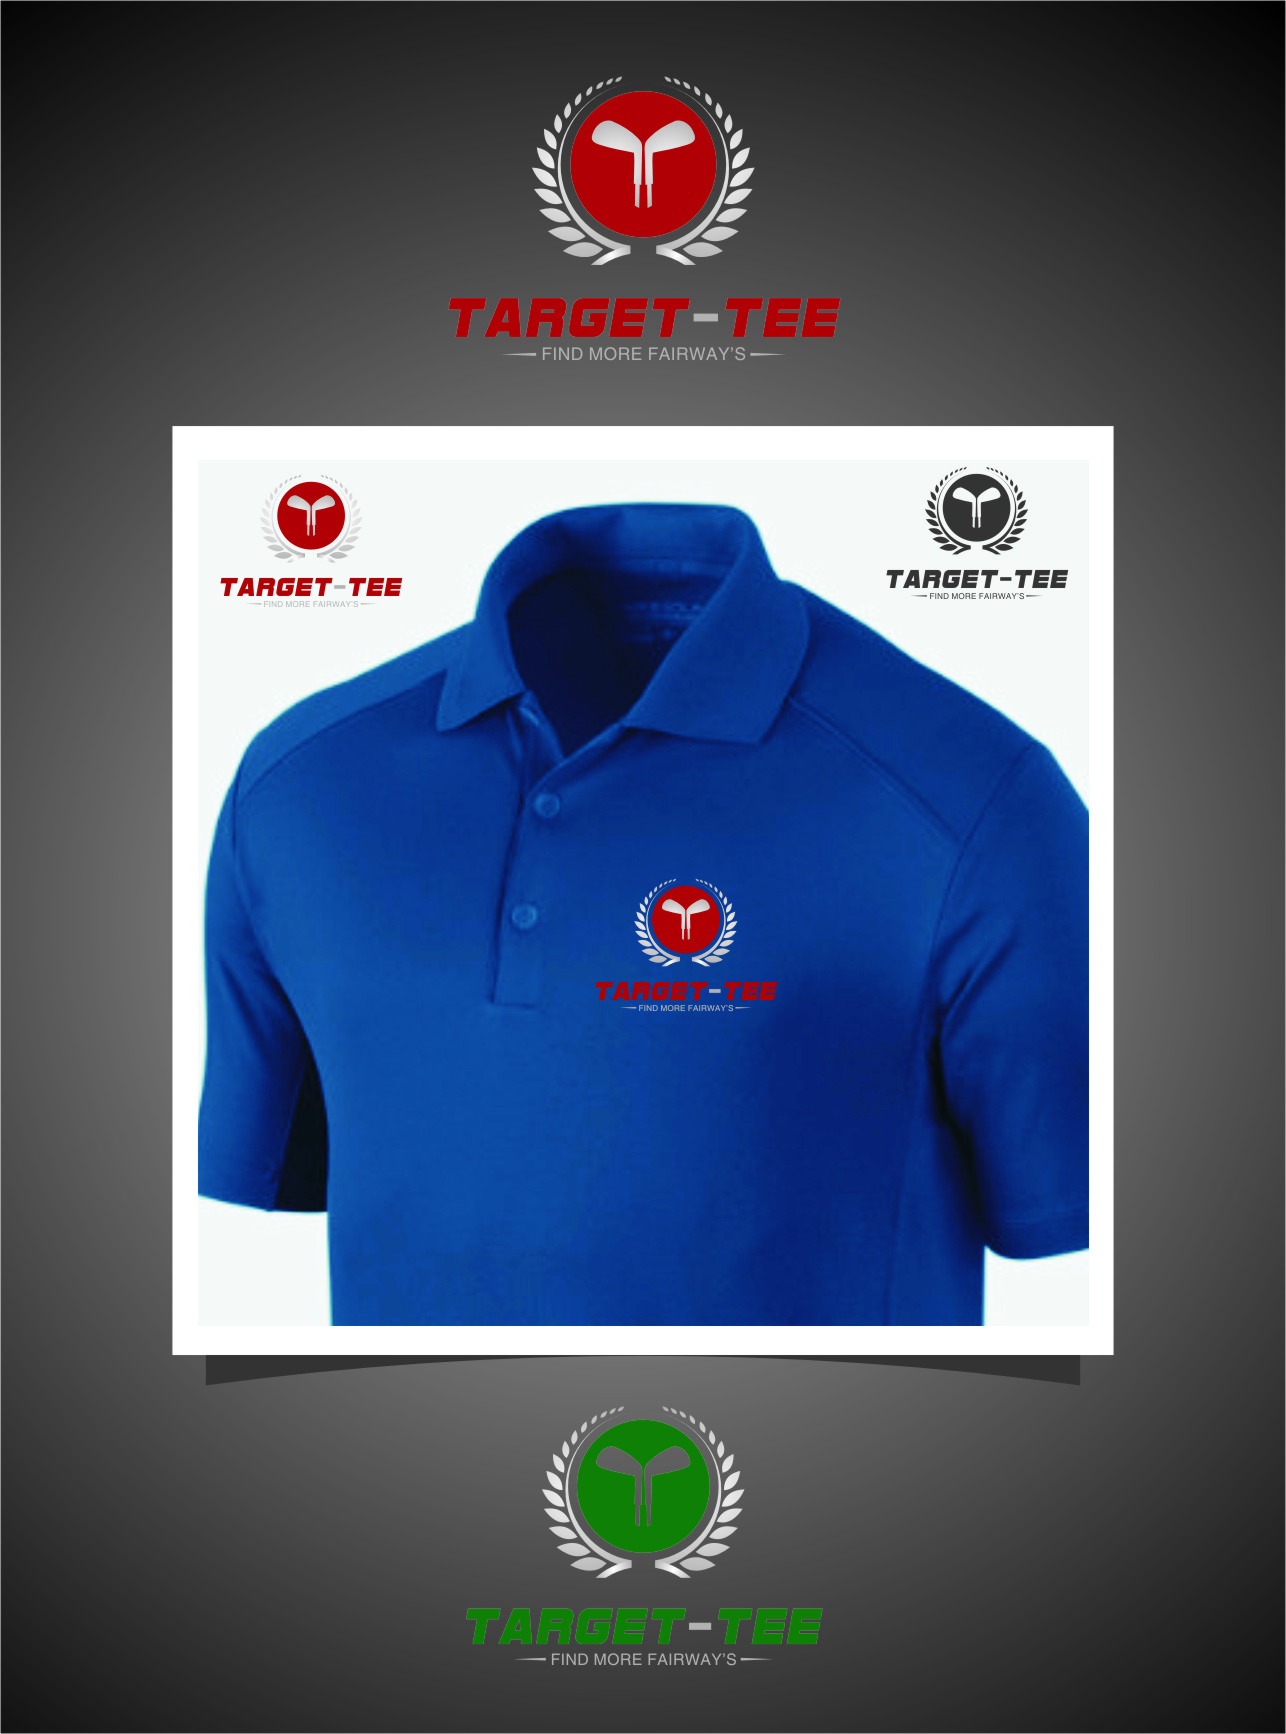 Logo Design by Ngepet_art - Entry No. 157 in the Logo Design Contest Imaginative Logo Design for TARGET-TEE.